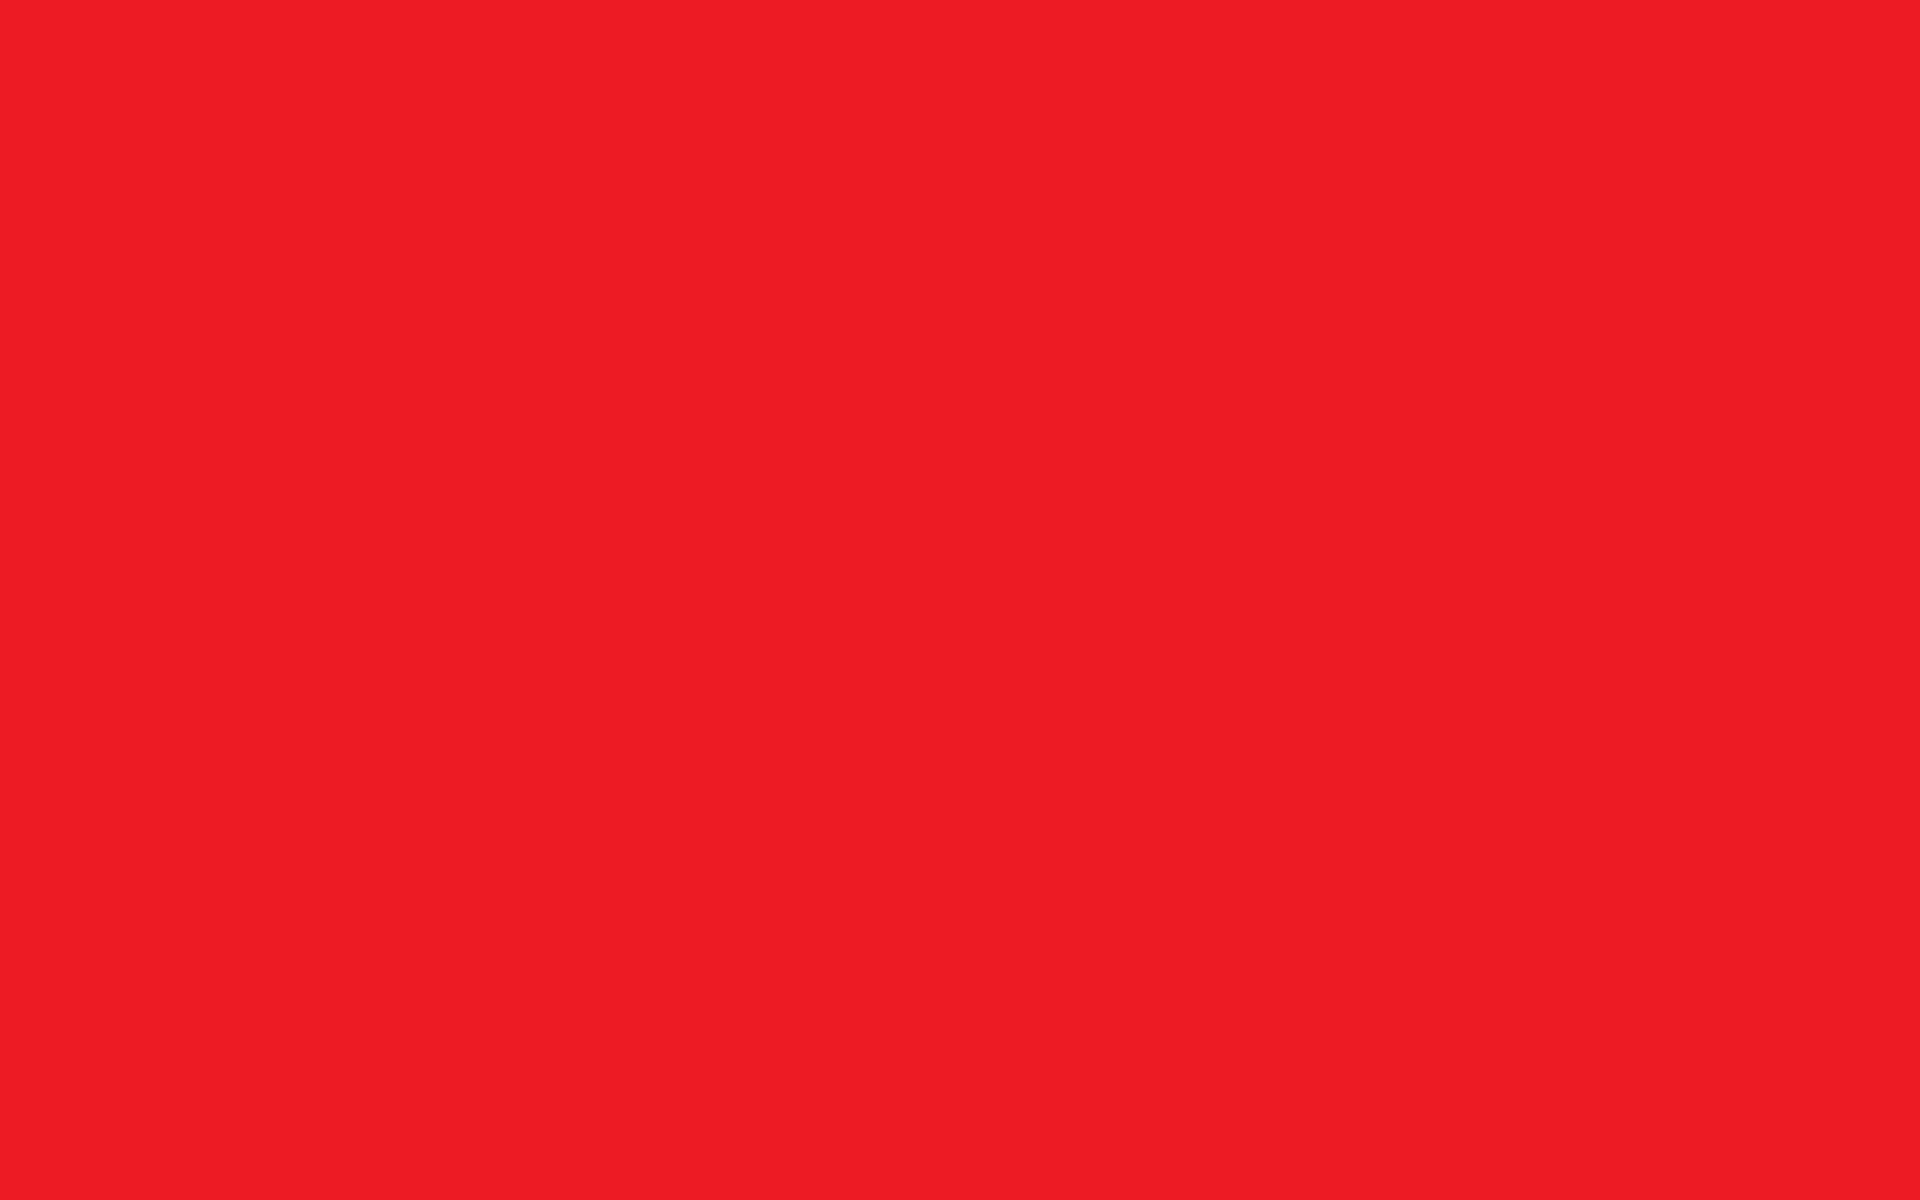 1920x1200 Red Pigment Solid Color Background